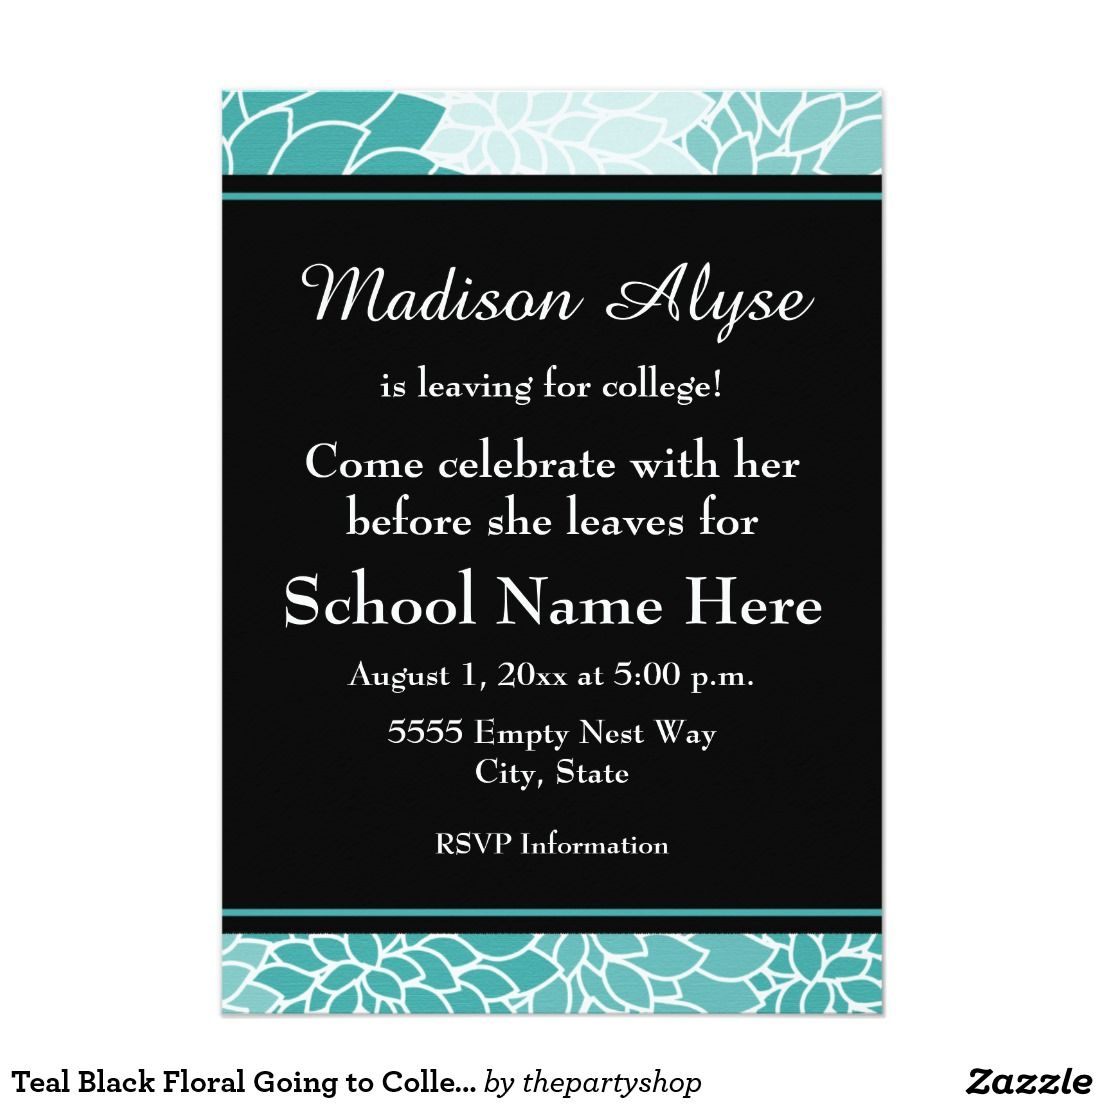 Teal black floral going to college party invite college parties party invitations filmwisefo Gallery